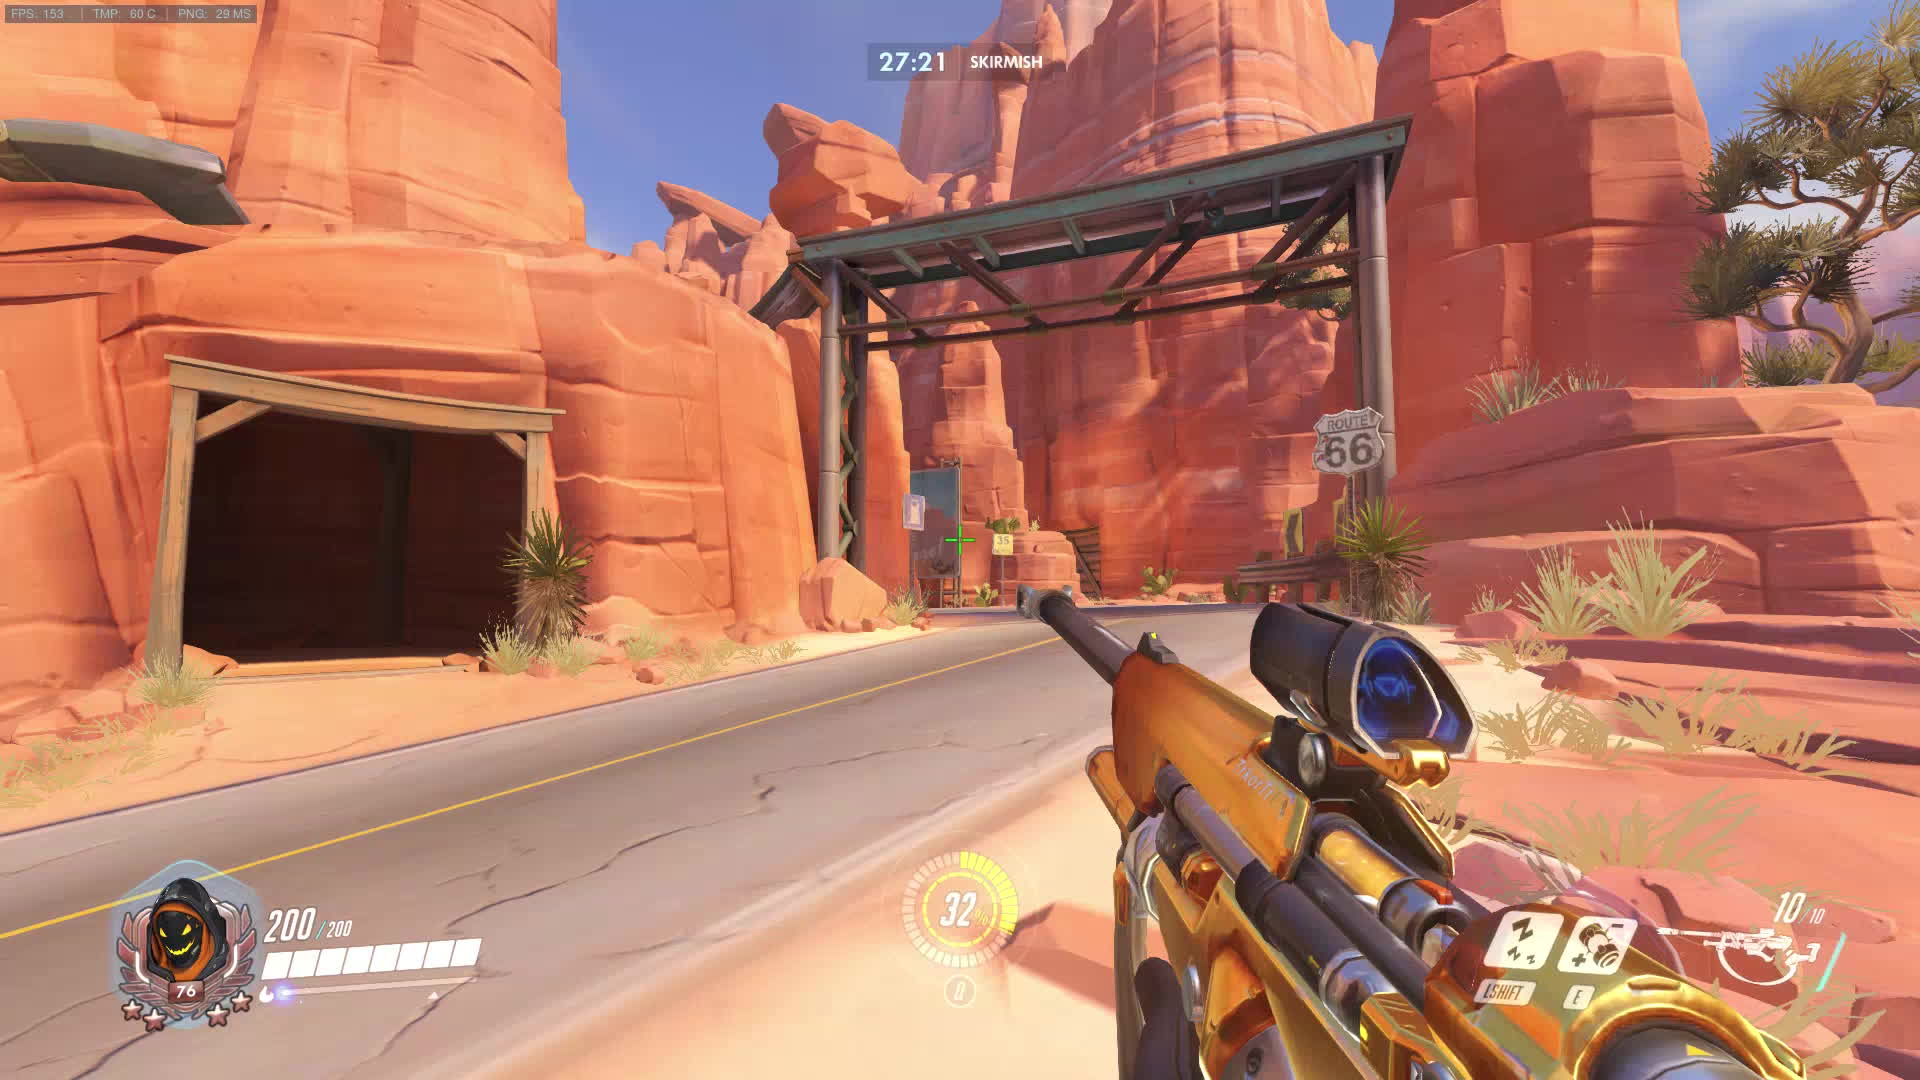 Competitiveoverwatch, Ana - Route 66 Offensive Nade GIFs